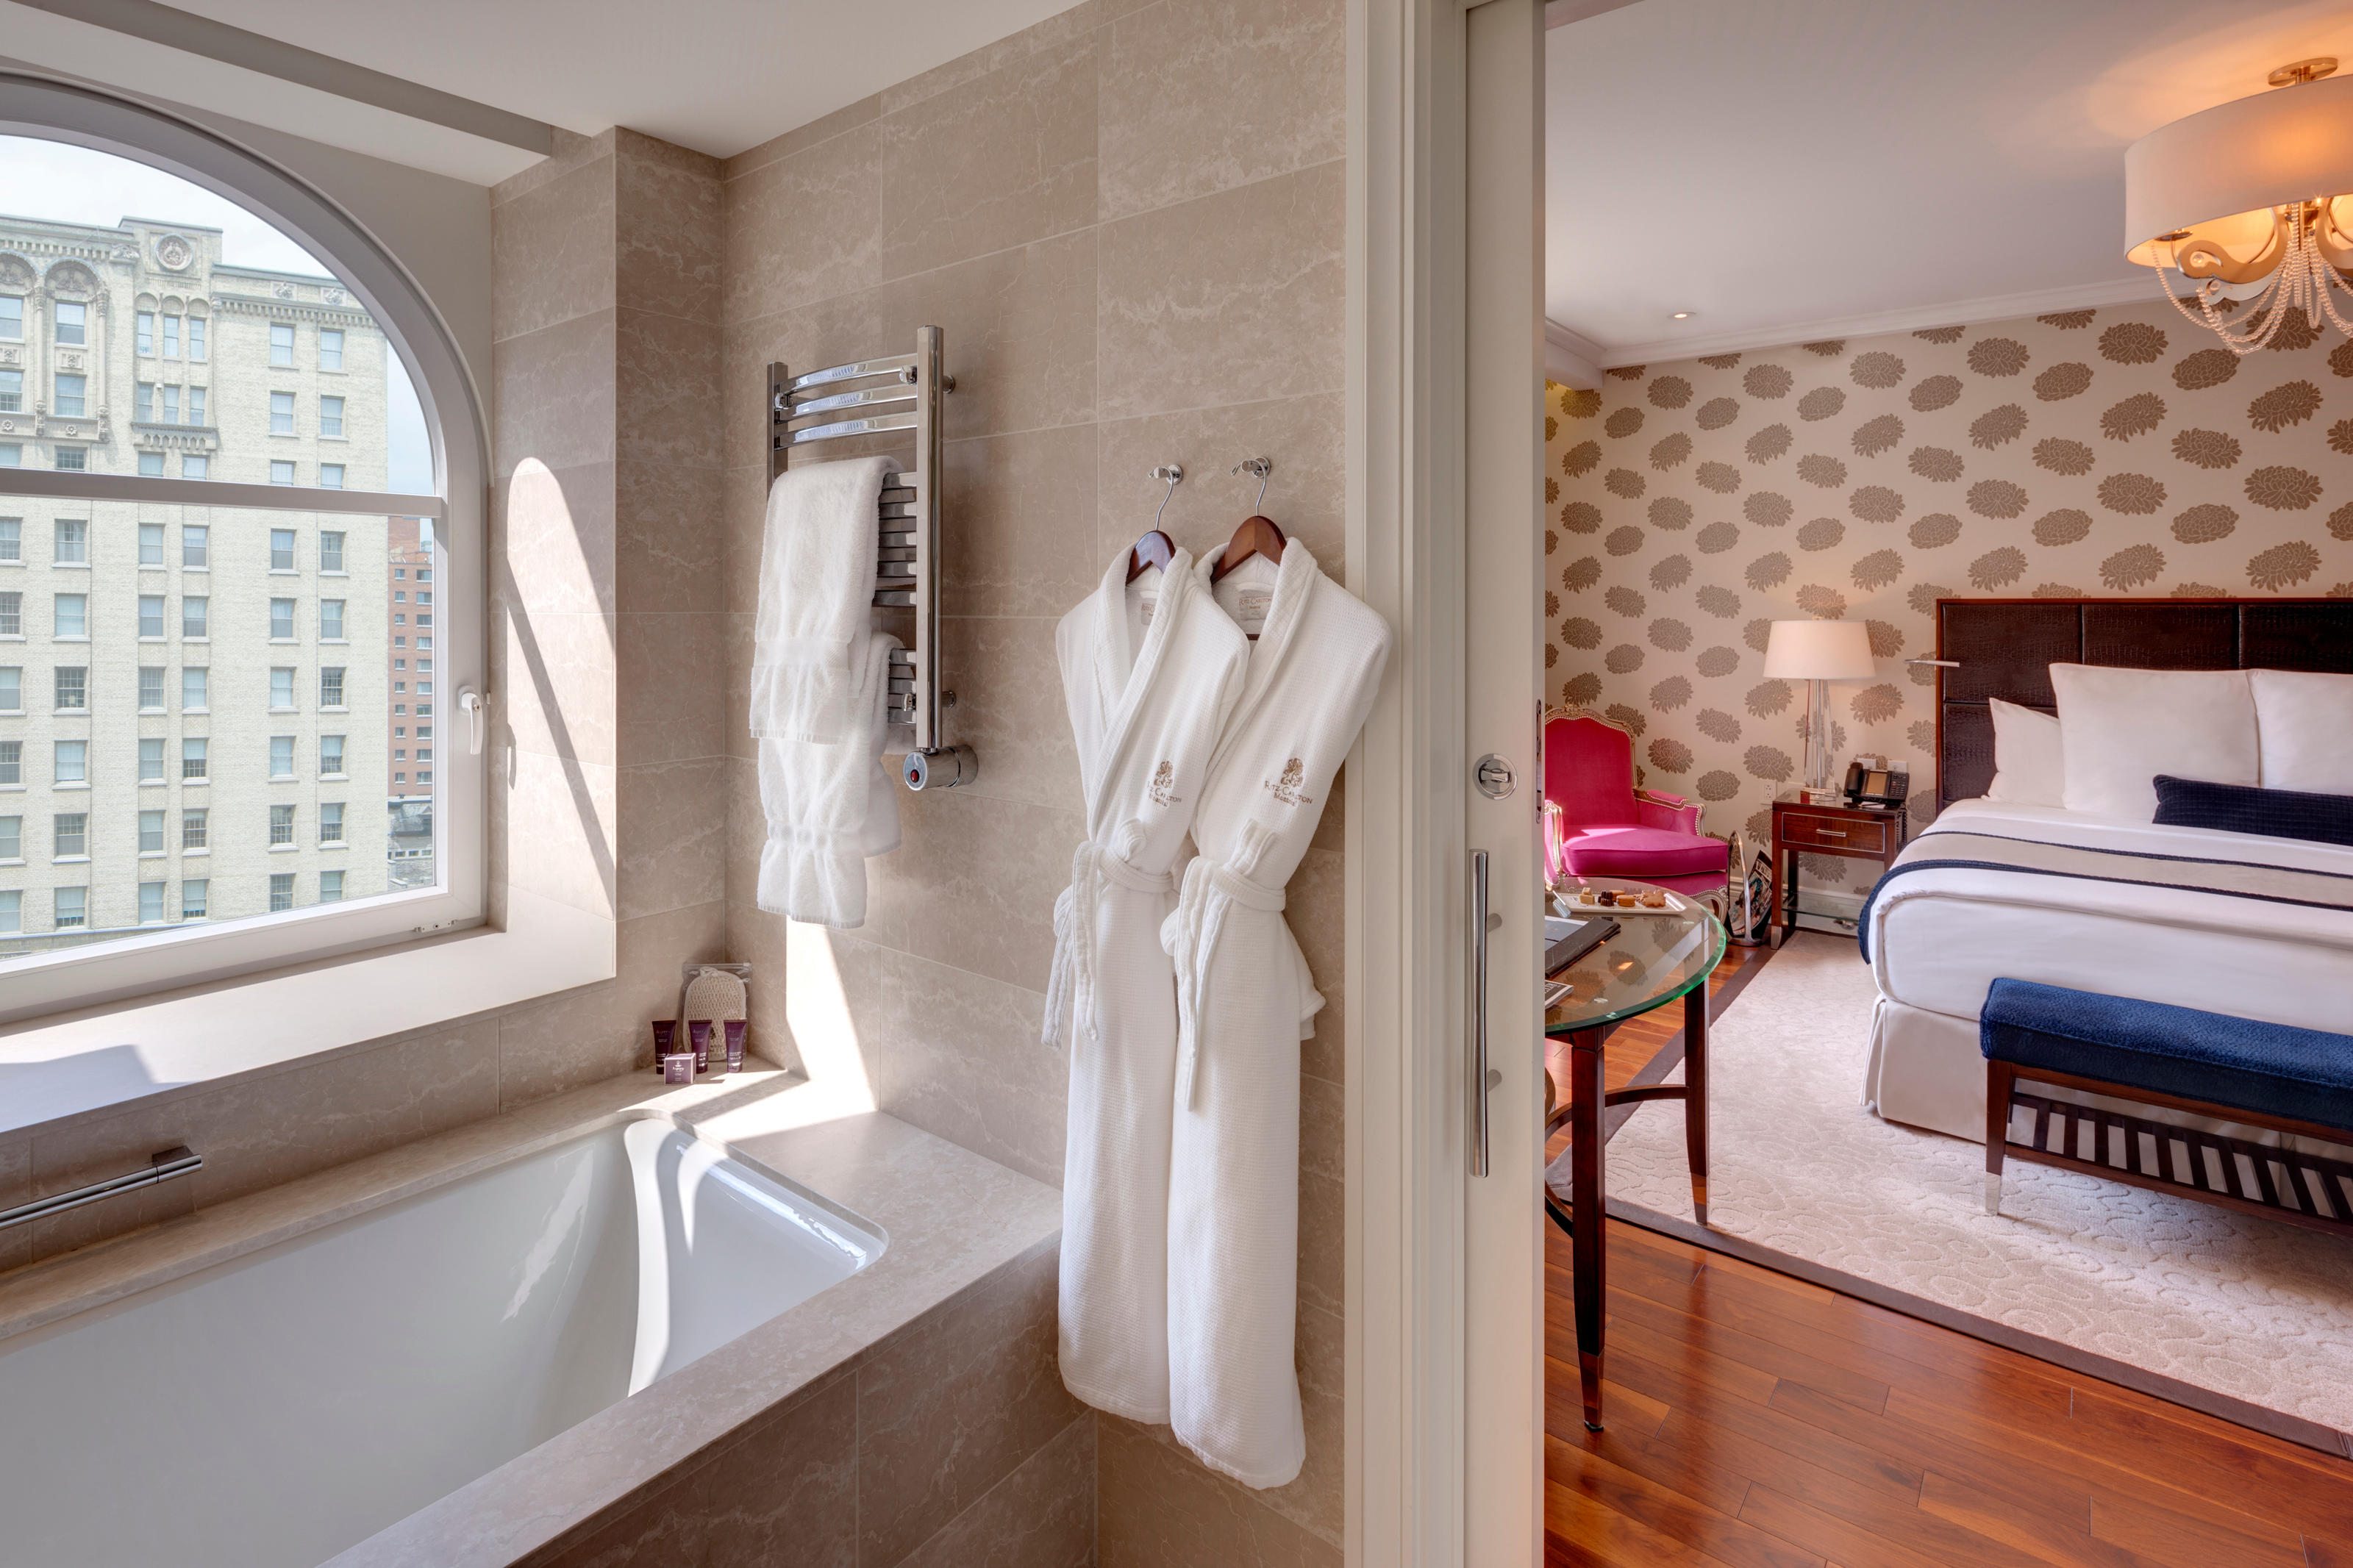 The Ritz-Carlton, Montreal à Montreal: Perfect for a couple's escape, our Signature Room defines sophistication with stylish décor and exceptional amenities. Unwind in a plush king bed with the pillow of your choice or refresh in a pristine bathroom with a spa-quality rain shower and oversized soaking tub. Nightly turndown, 24-hour in-room dining and other discreet services are available.